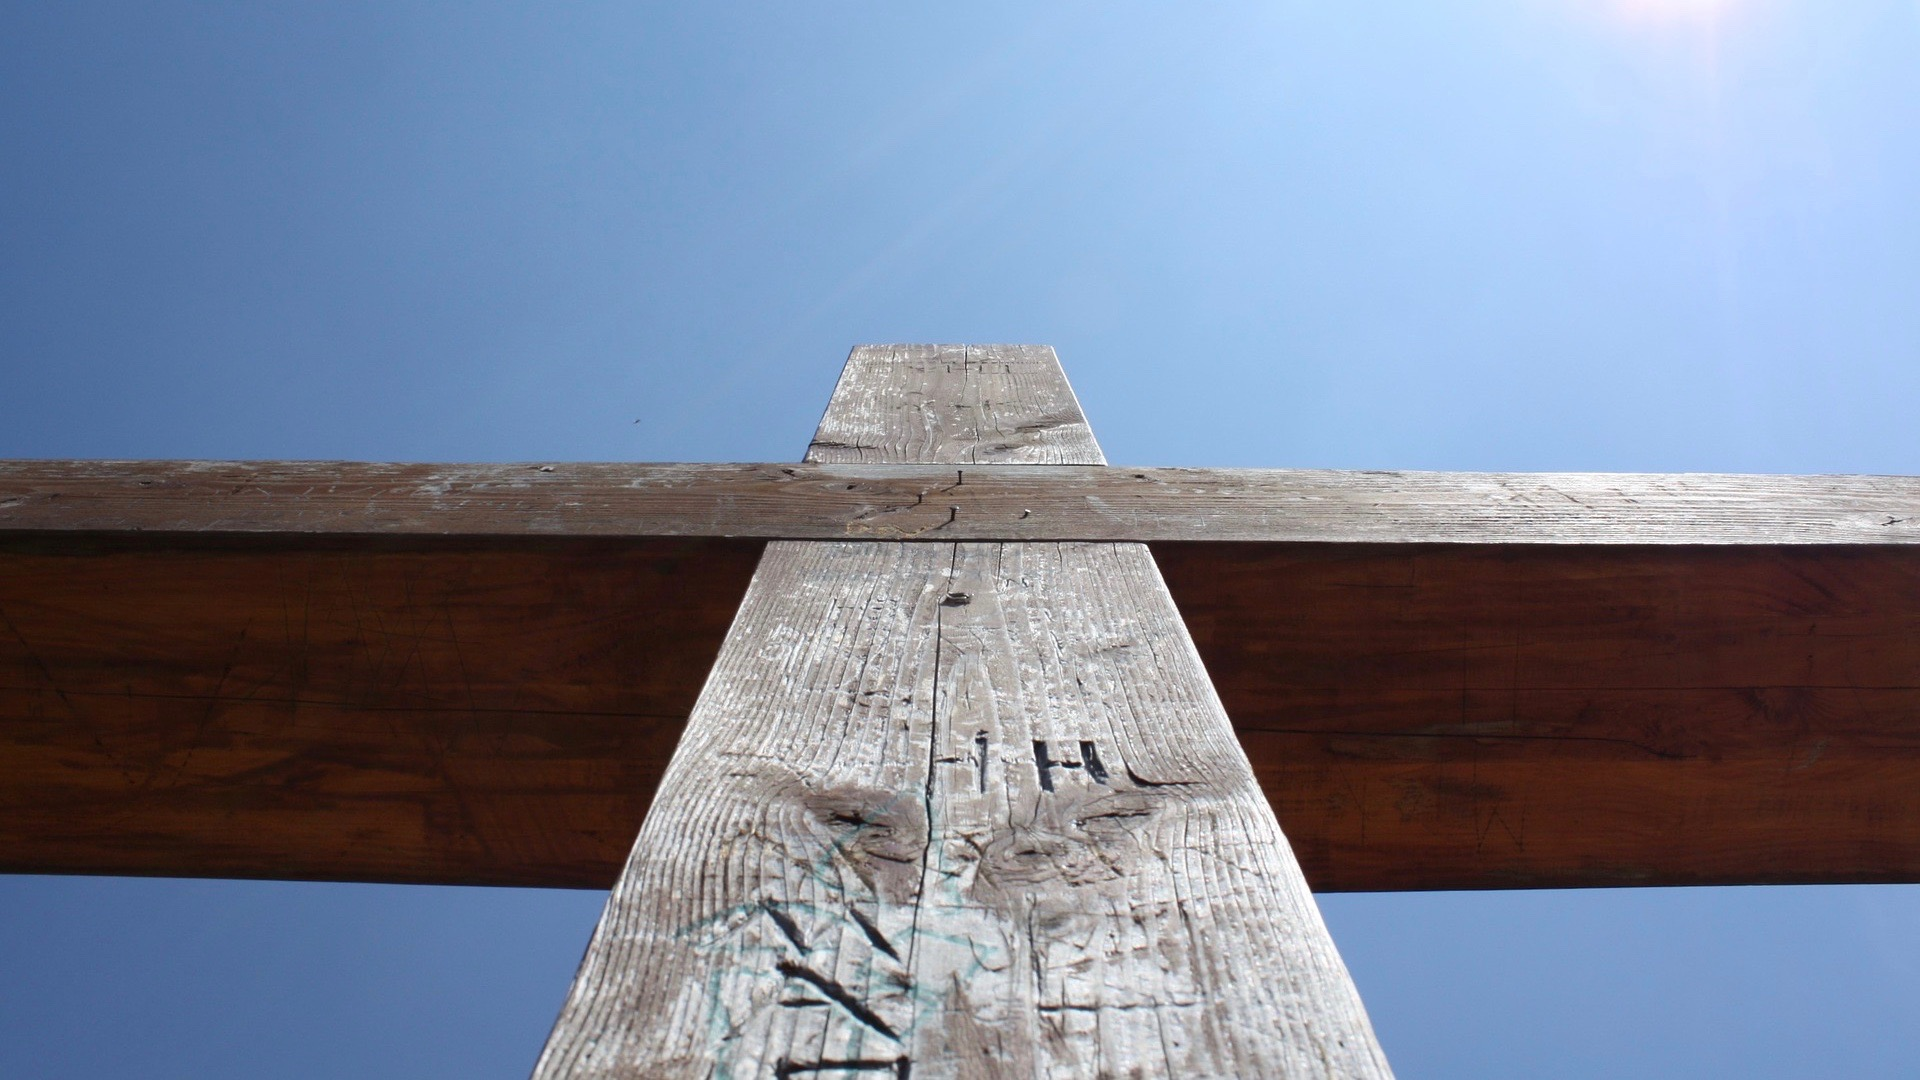 Looking upwards at a wooden cross